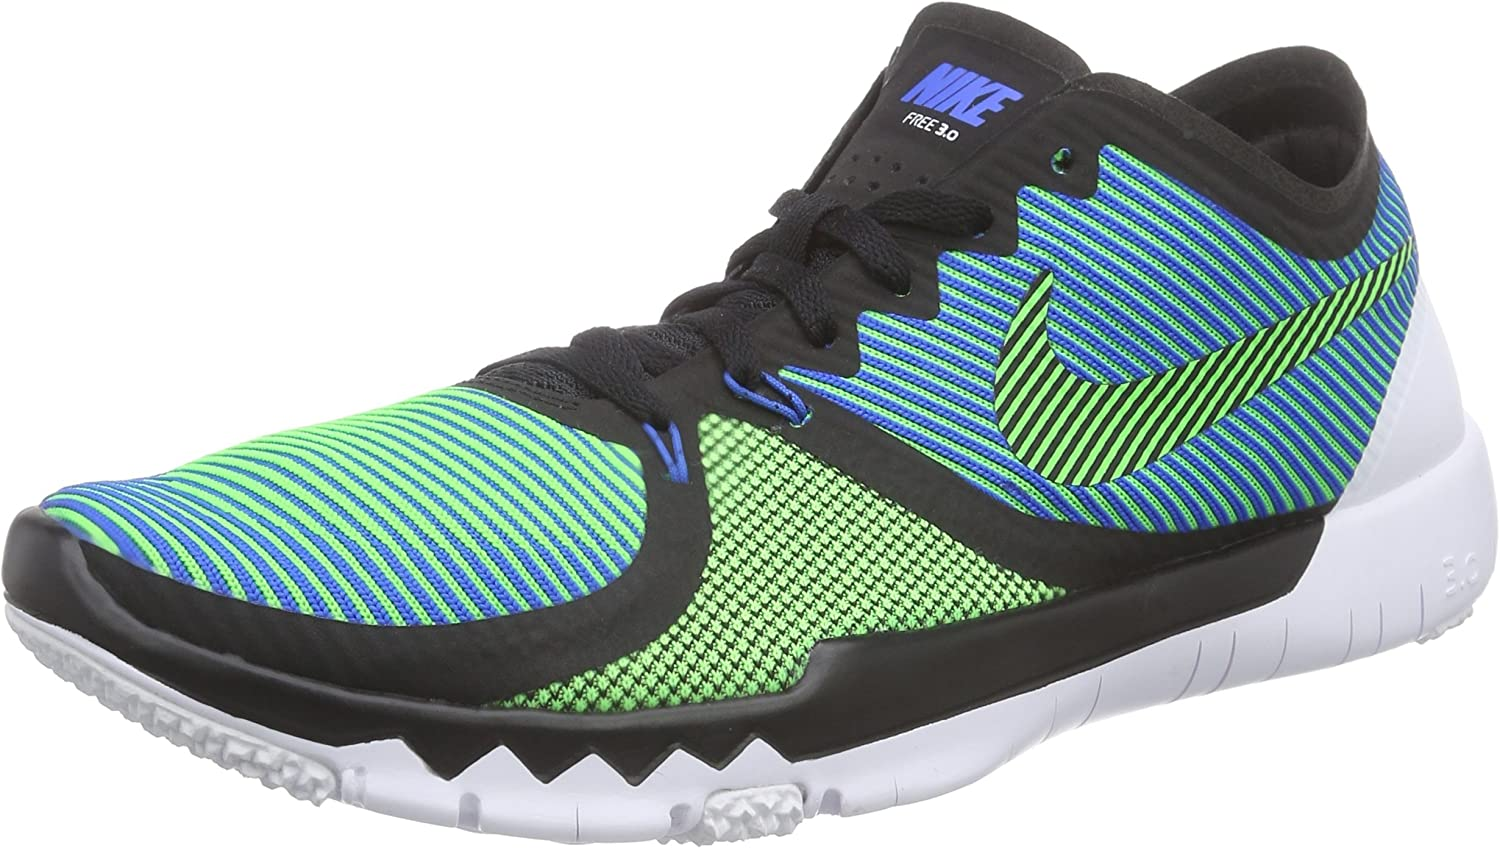 Nike Mens Free Trainer 3.0 V4, BLACK GREEN STRIKE-SOAR-WHITE, 9 M US